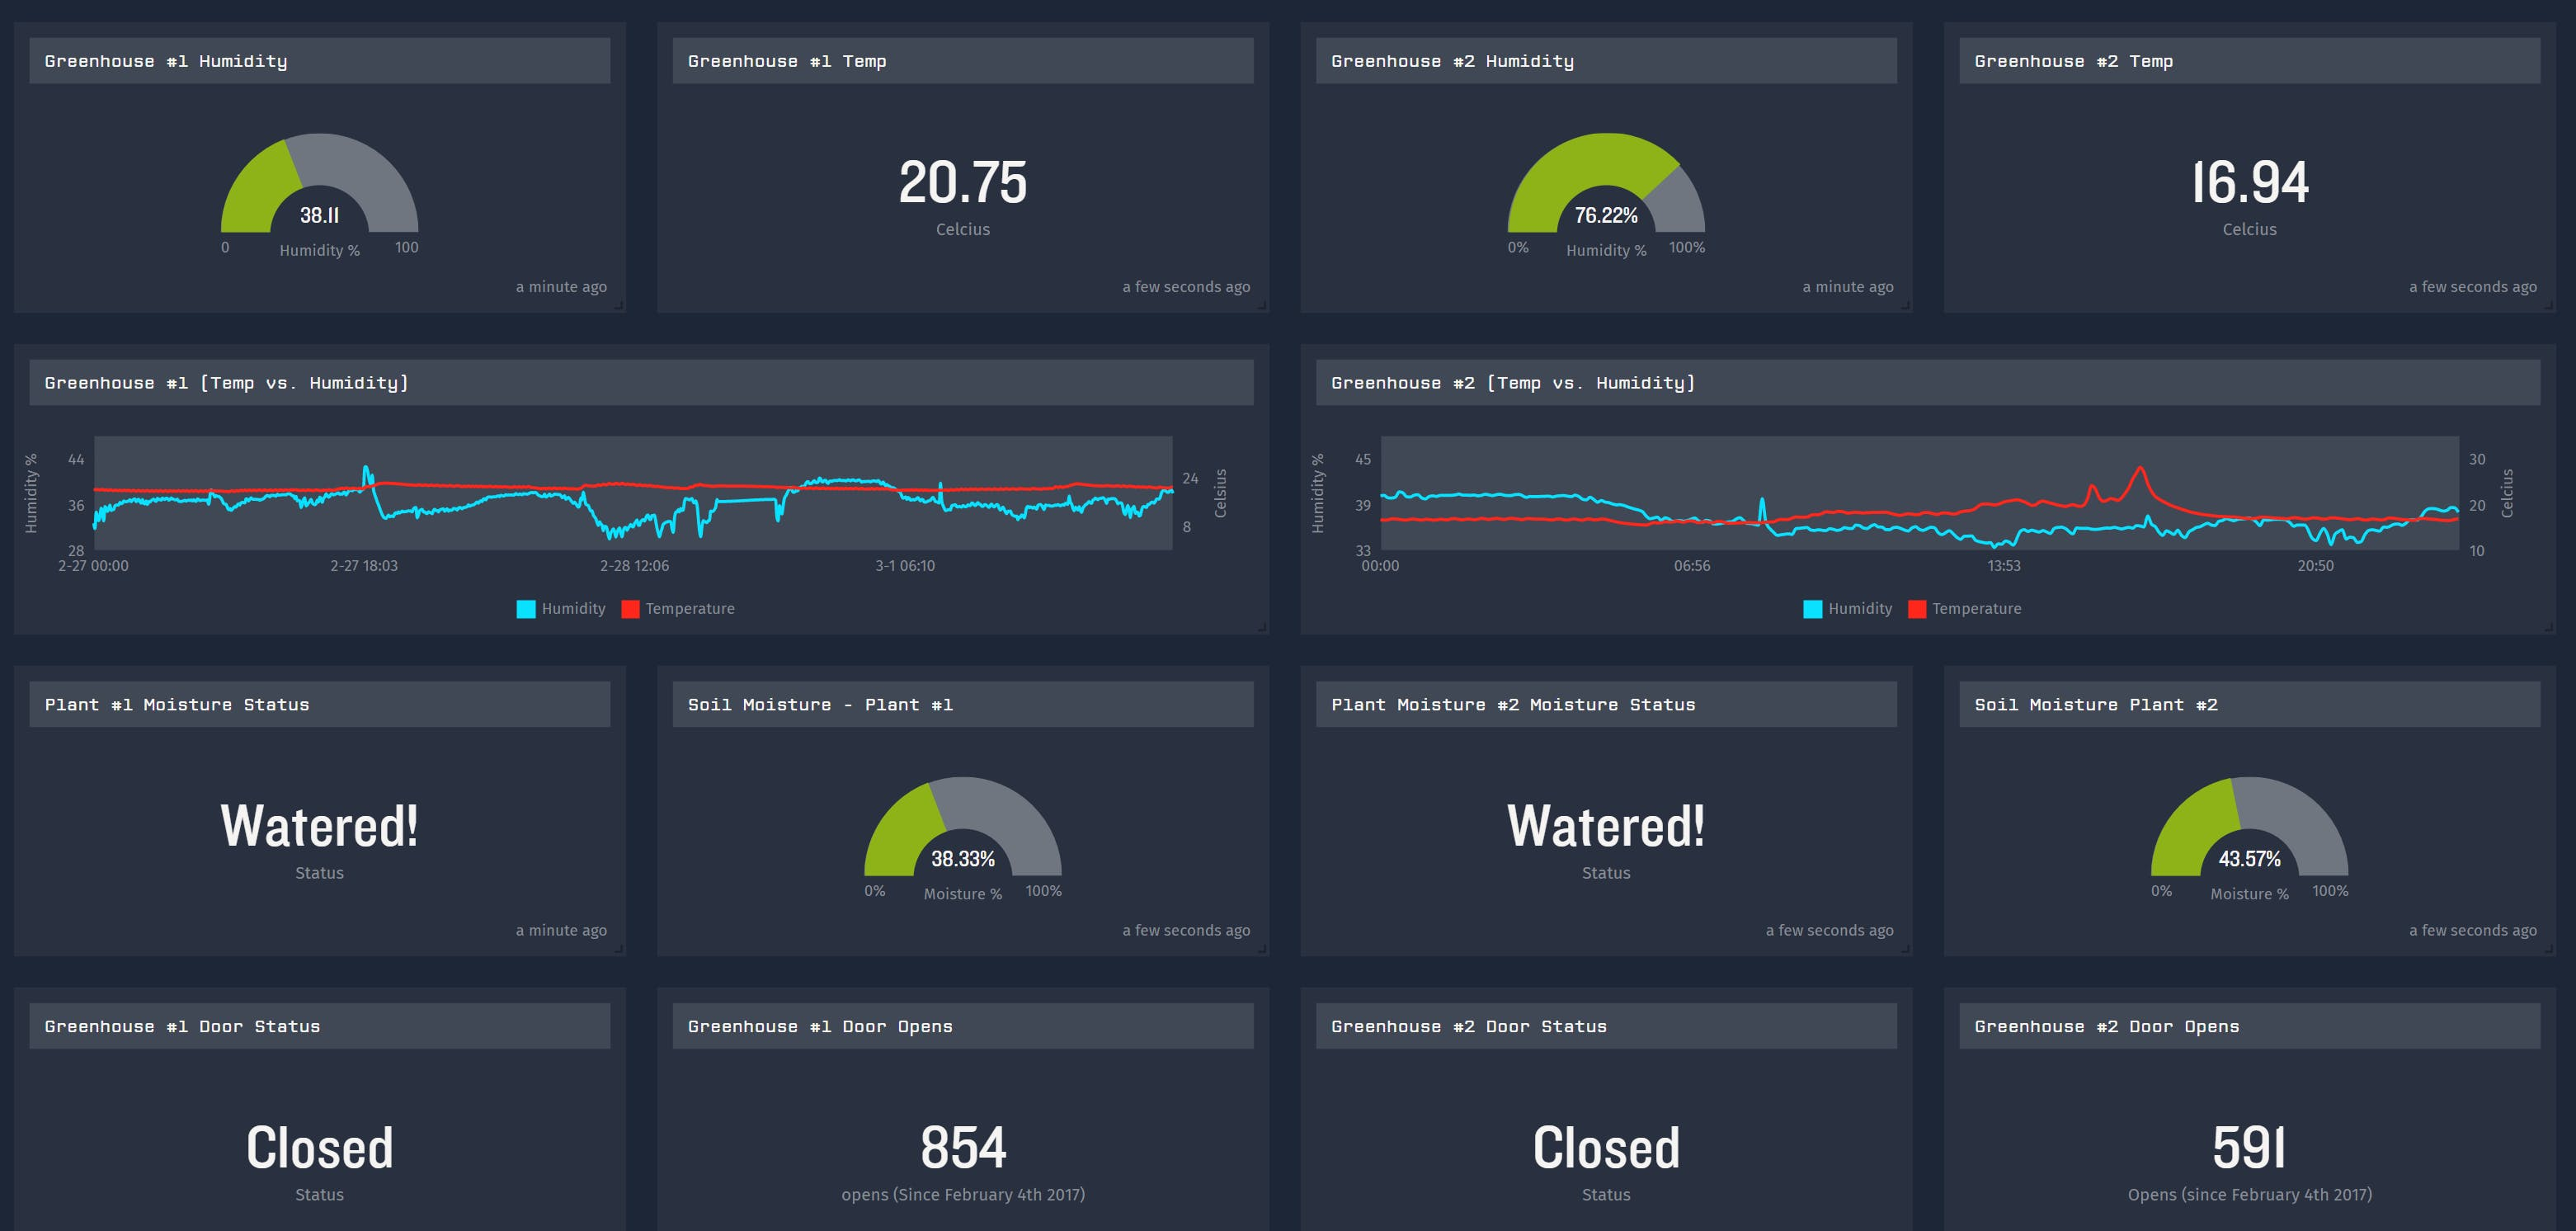 Example Agriculture Dashboard: Humidity, Temperature, Soil Moisture levels and Door statuses